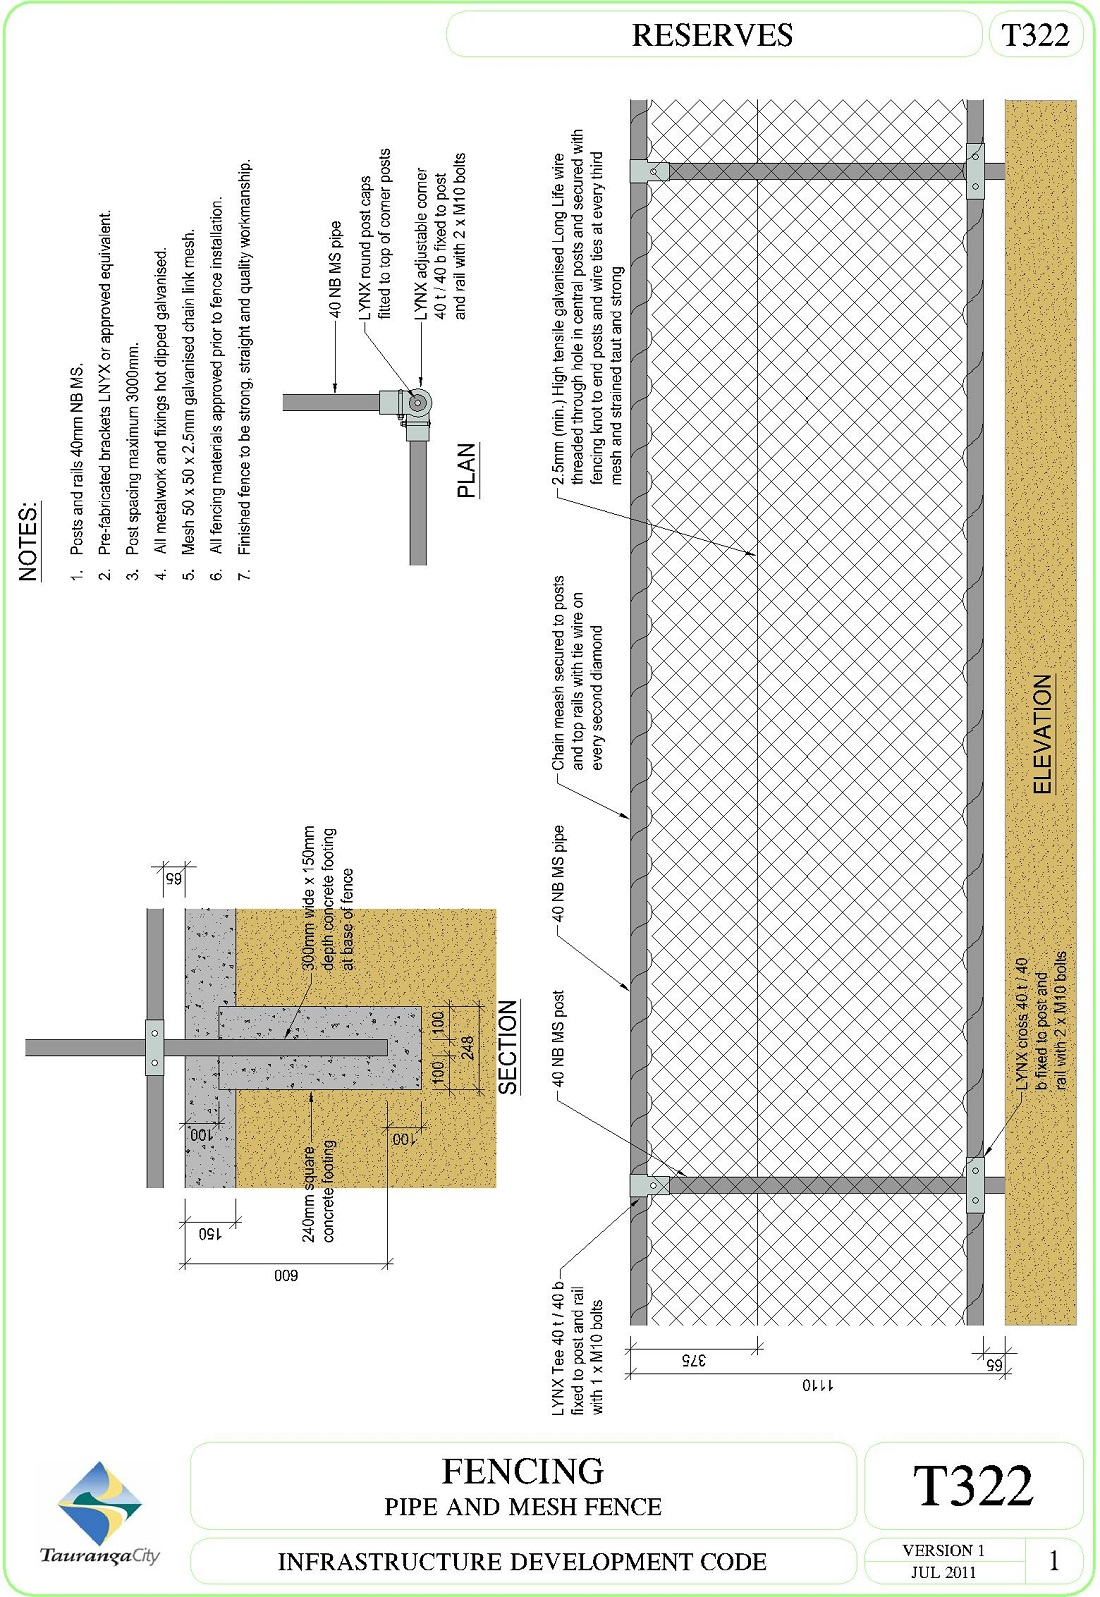 Fencing - Pipe and Mesh